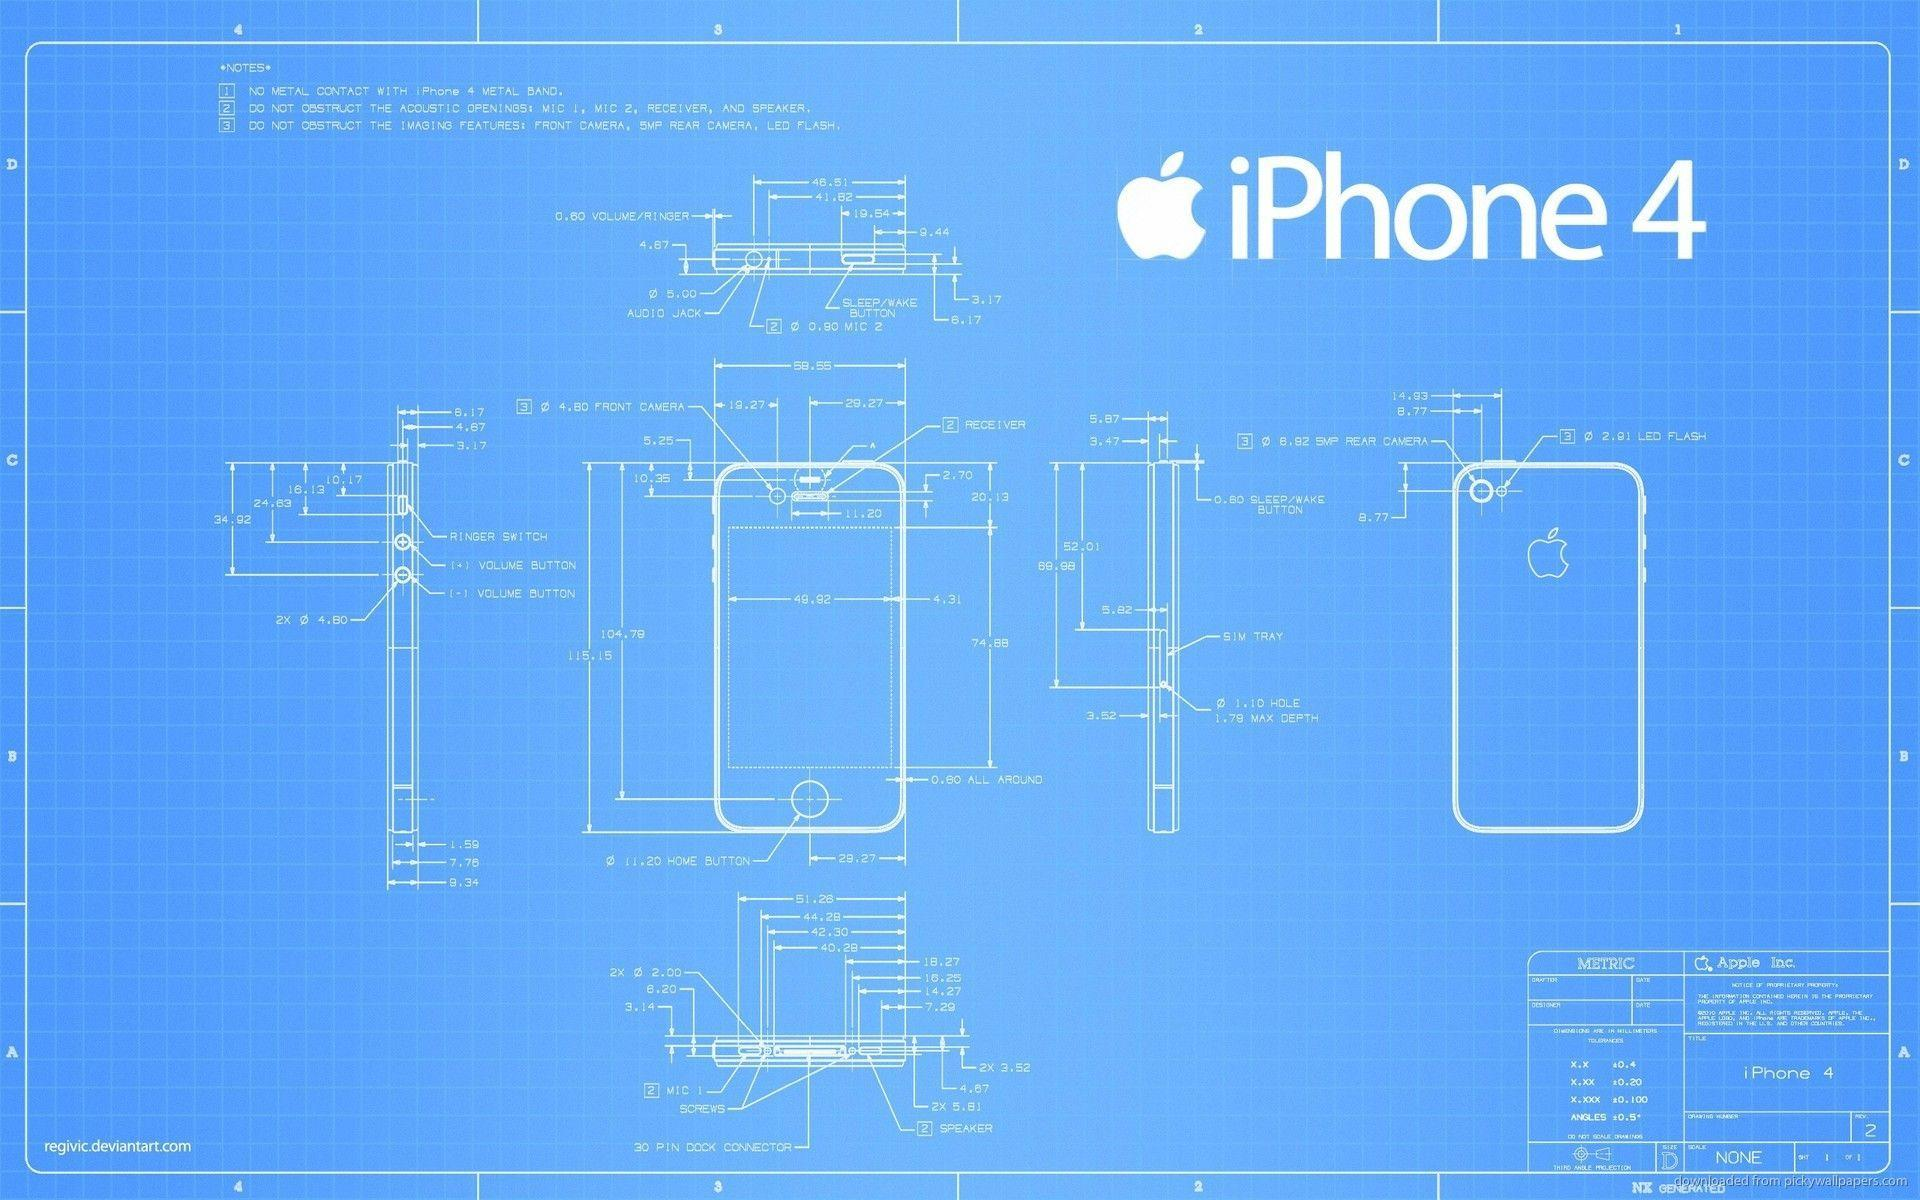 Blueprint wallpapers wallpaper cave blueprint wallpapers full hd wallpaper search malvernweather Images